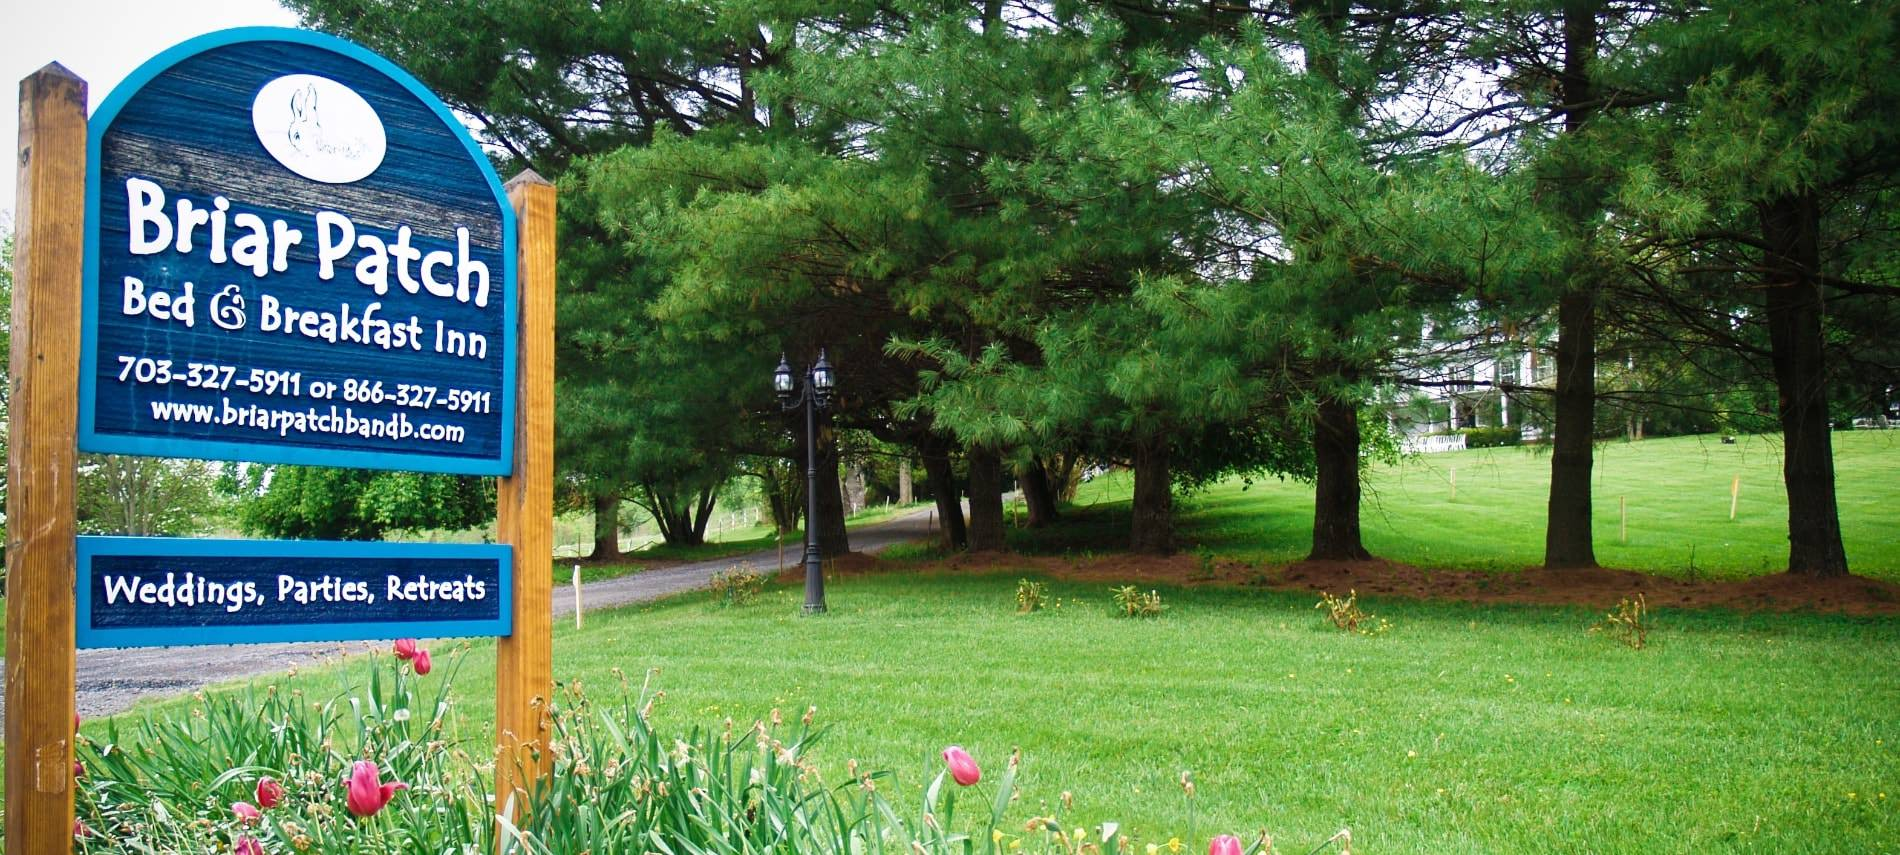 Large wooden sign painted blue with white lettering about Briar Patch Bed & Breakfast Inn surrounded by green grass, evergreen trees, and pink tulips